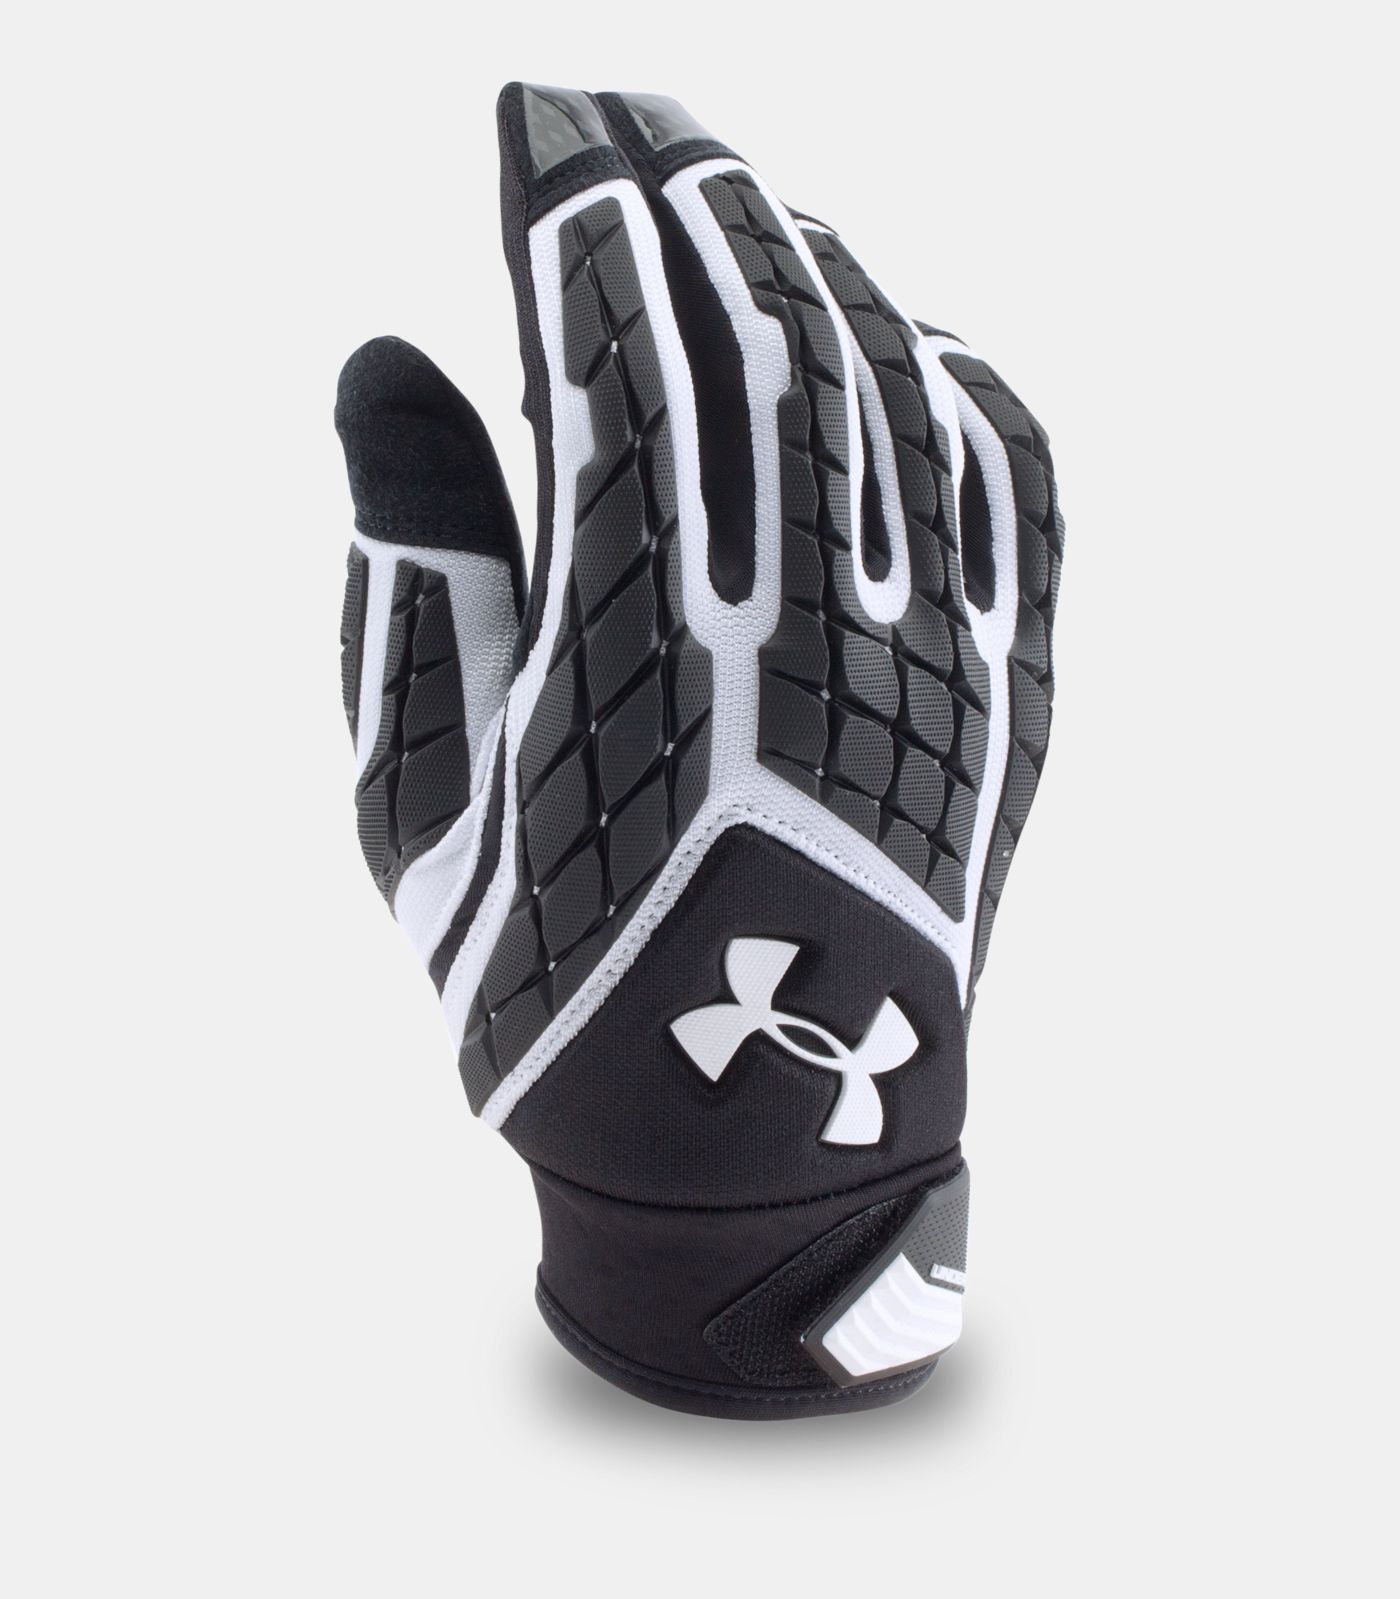 Mens ua combat v football gloves with images football